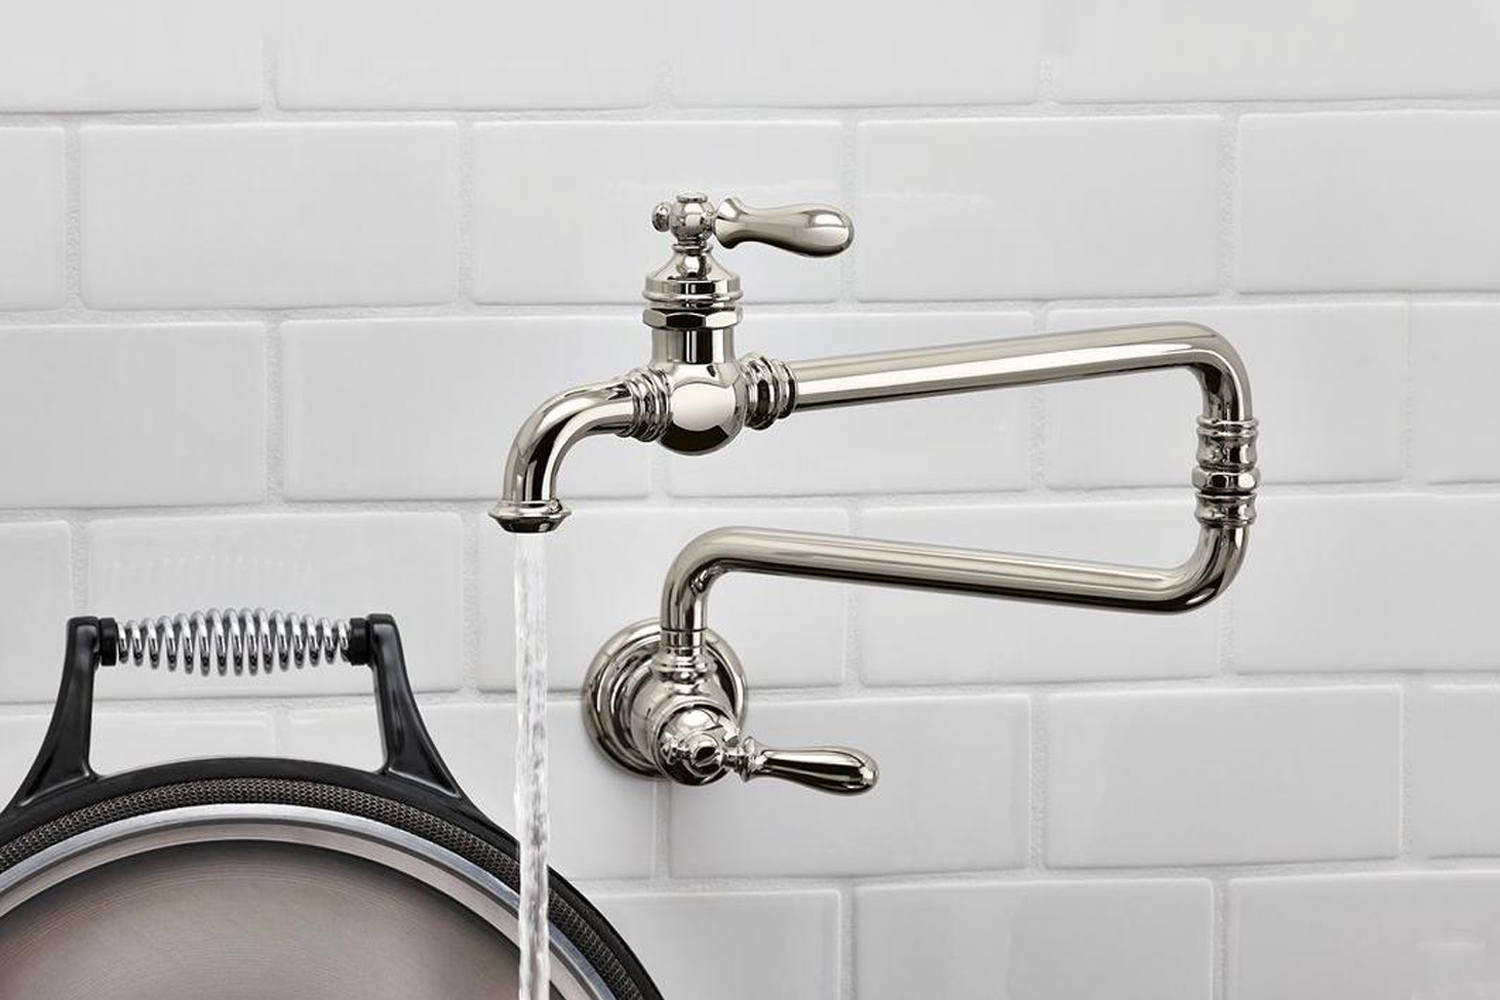 10 Top Traditional Pot Filler Faucets For The Kitchen Remodel